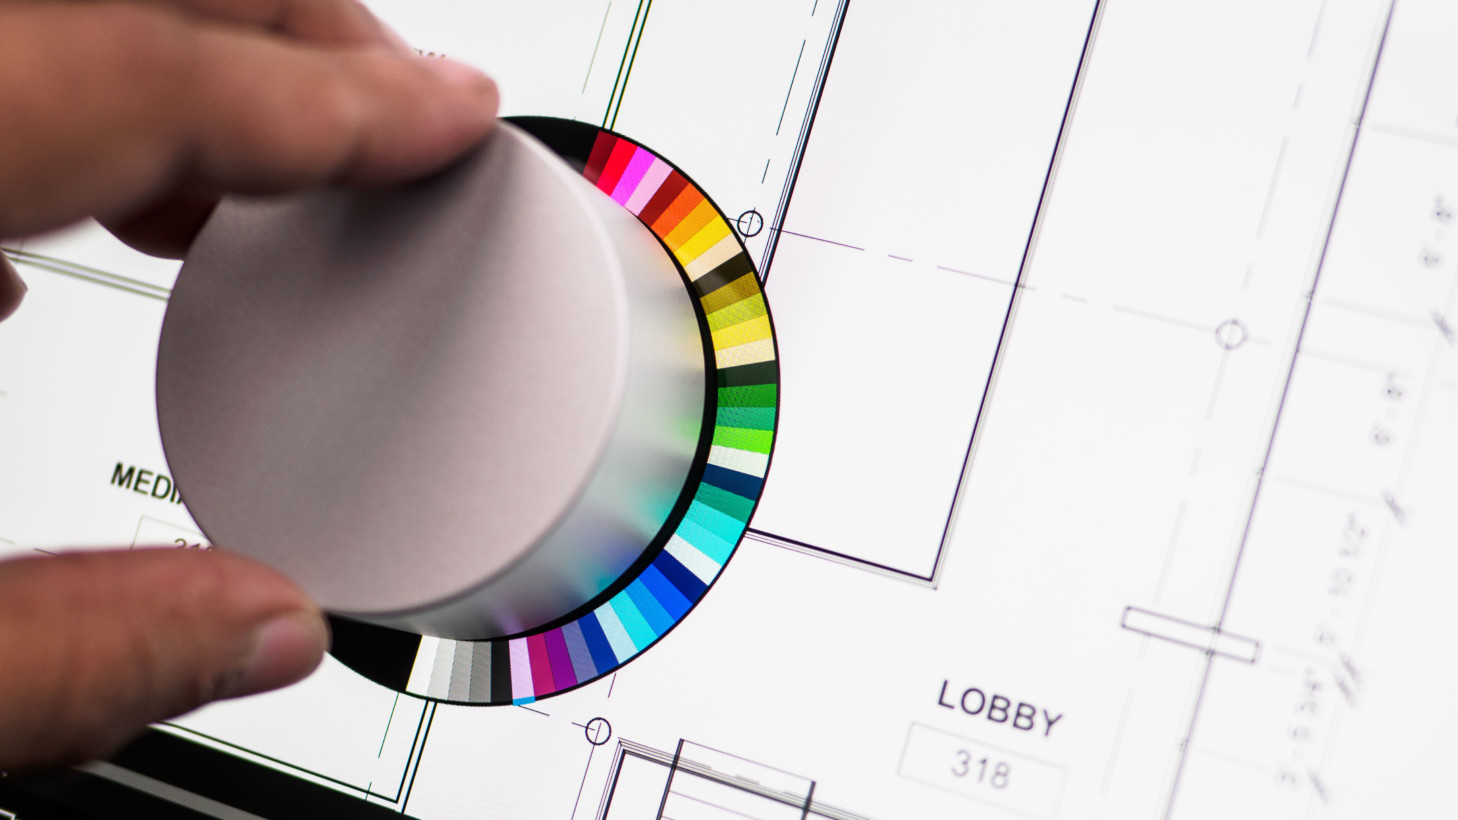 Surface Dial: Release Details & Why You Might Want One